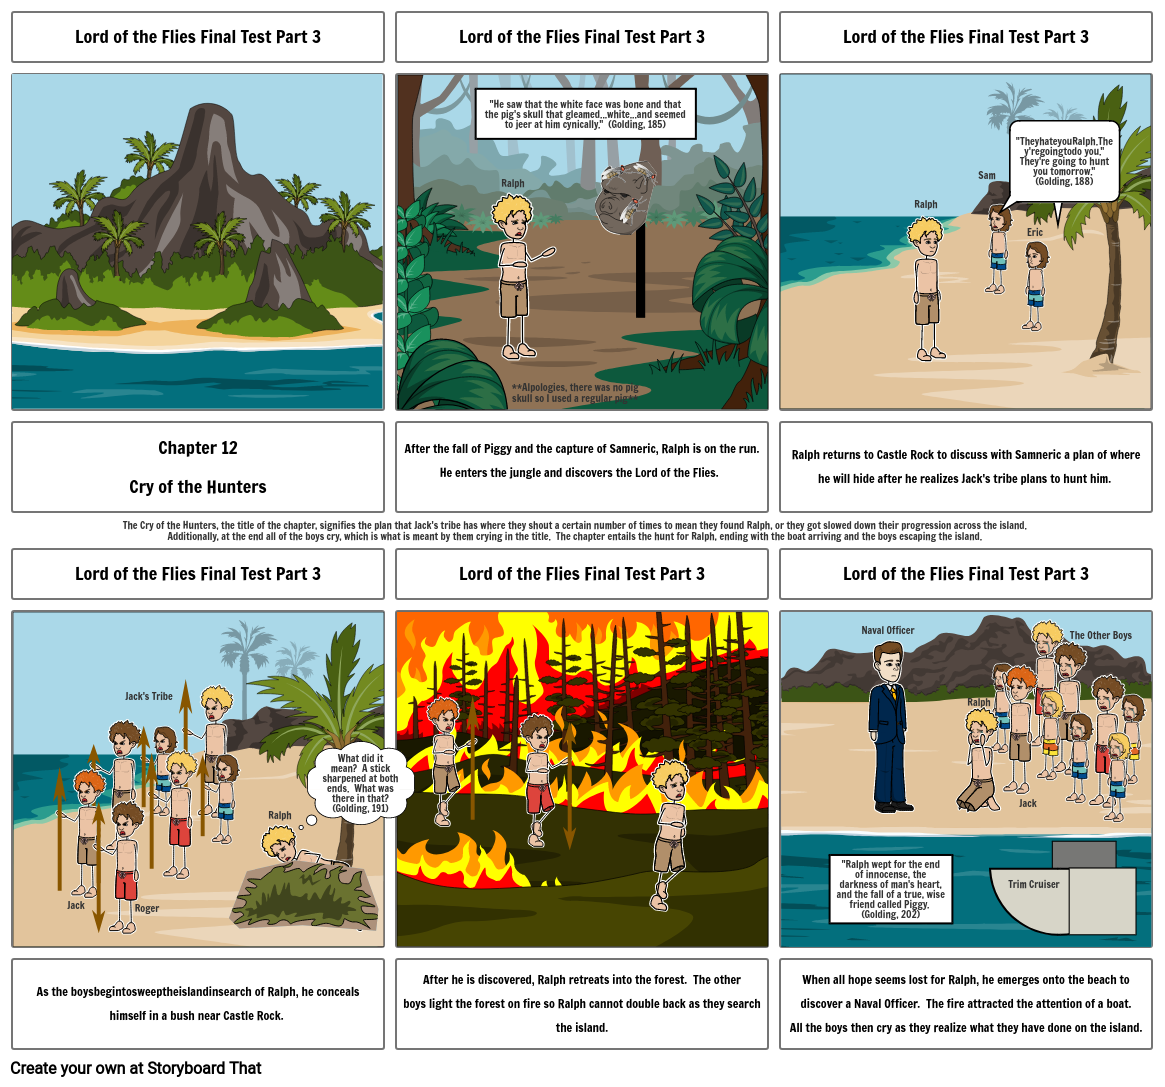 Lord of the Flies Final Test Part 3